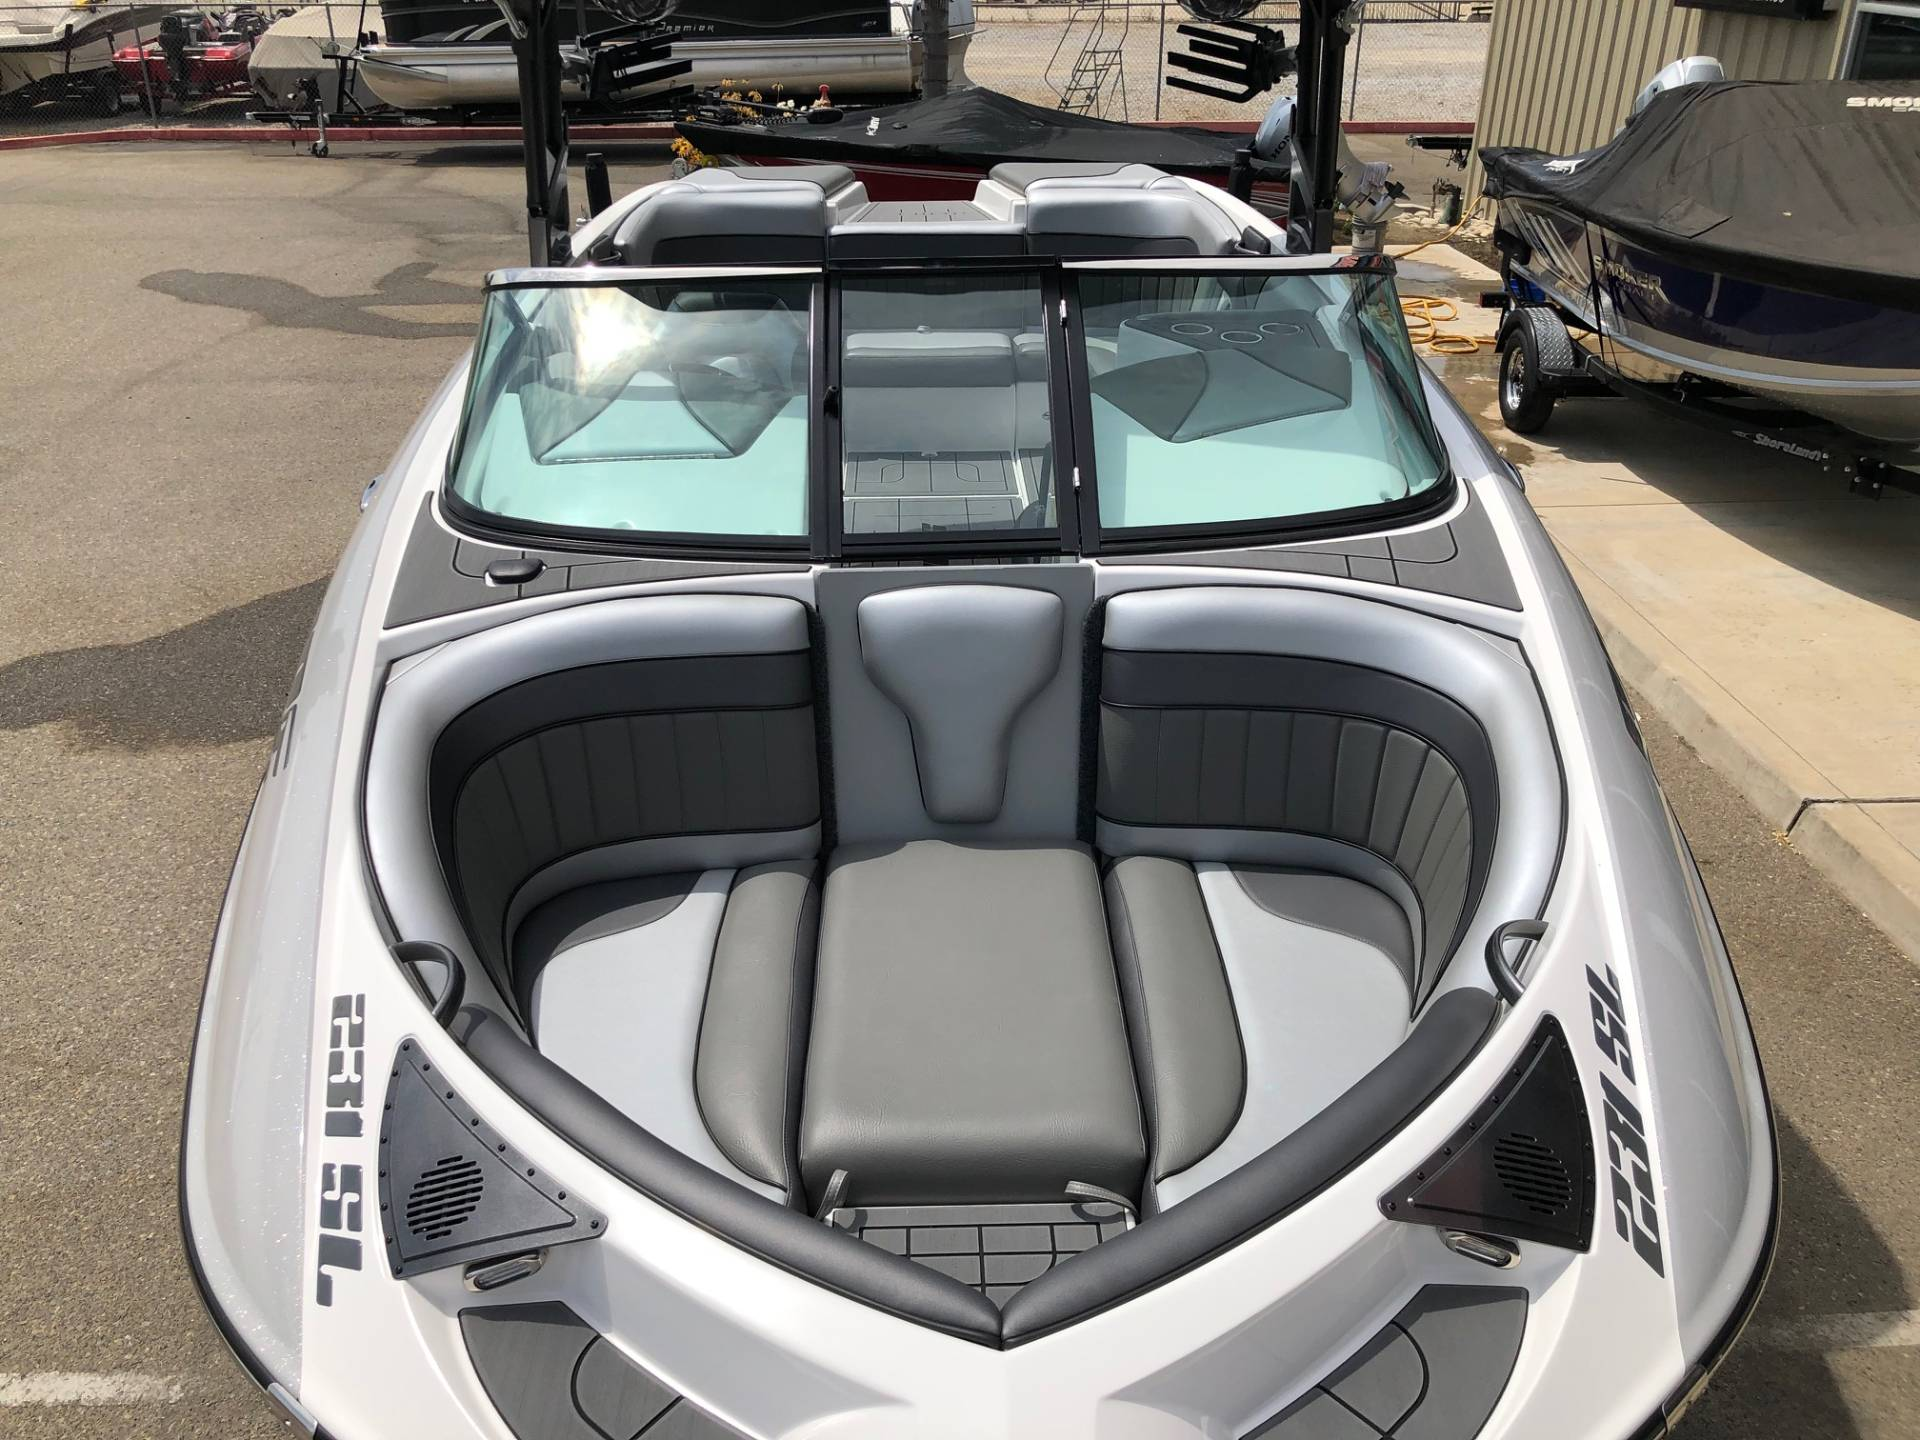 2020 Sanger Boats 231 SLE in Madera, California - Photo 9